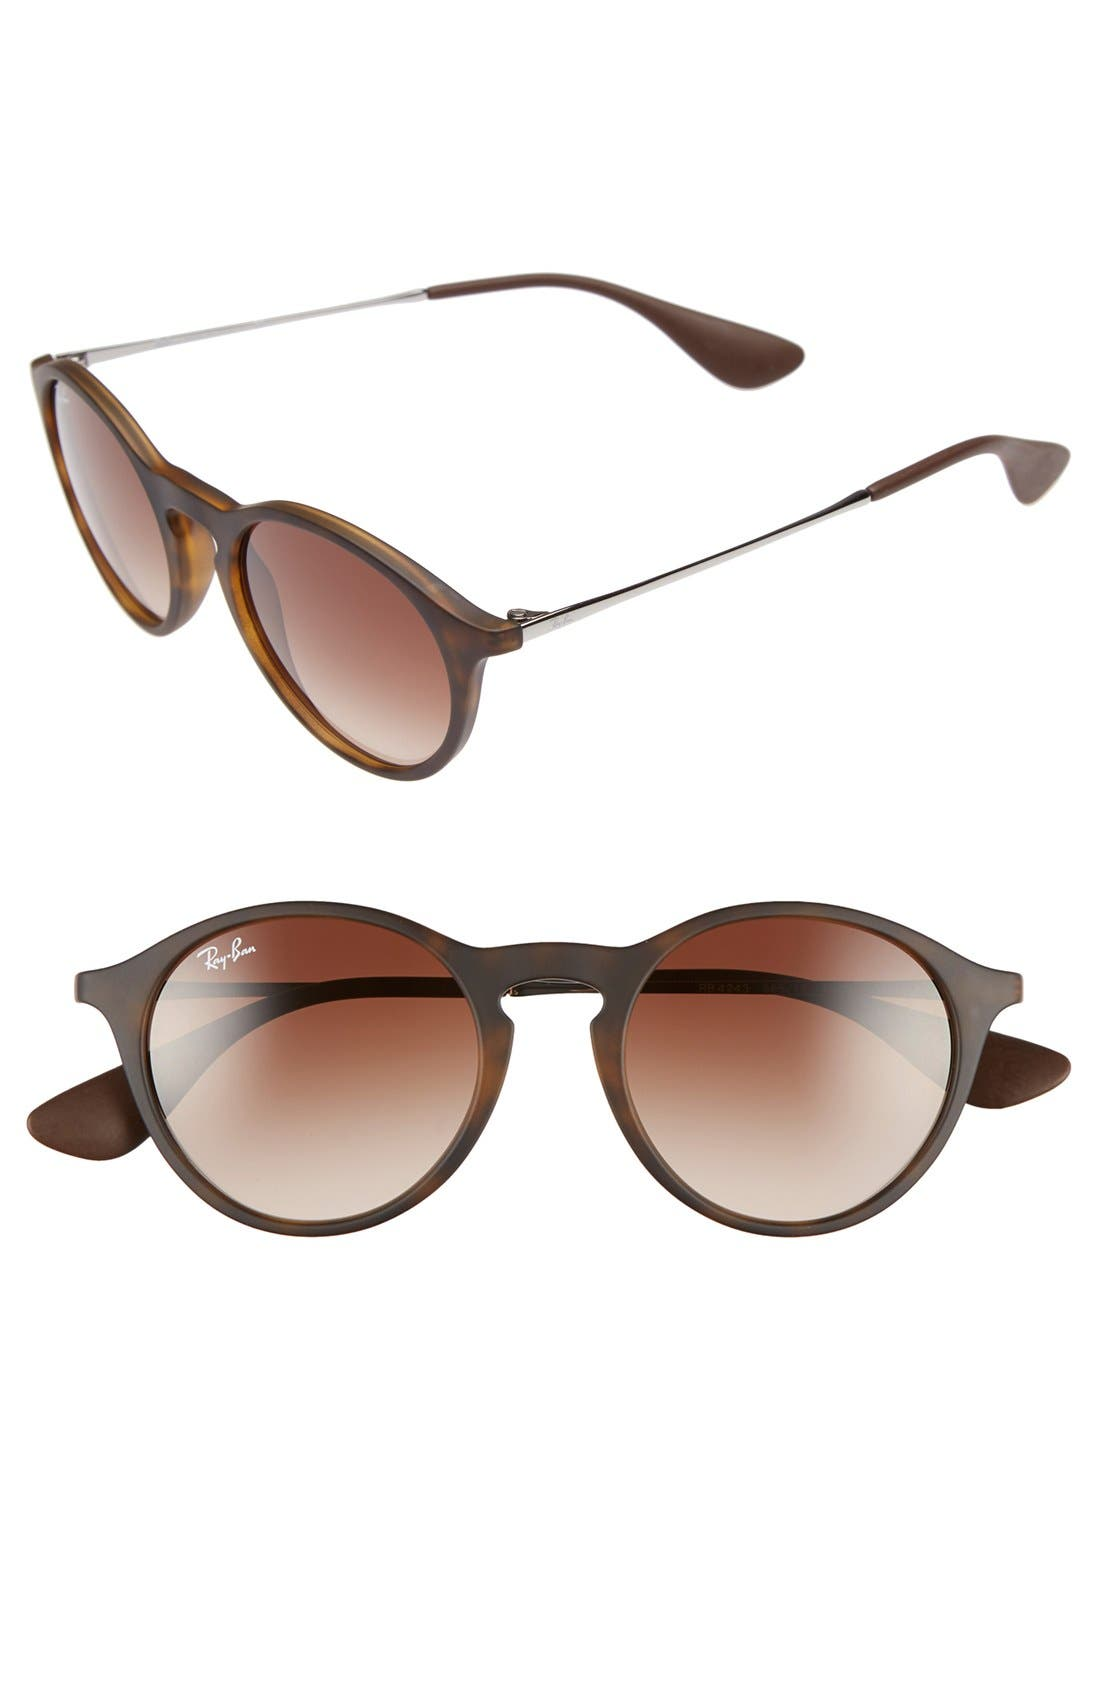 Main Image - Ray-Ban 'Youngster' 49mm Round Sunglasses